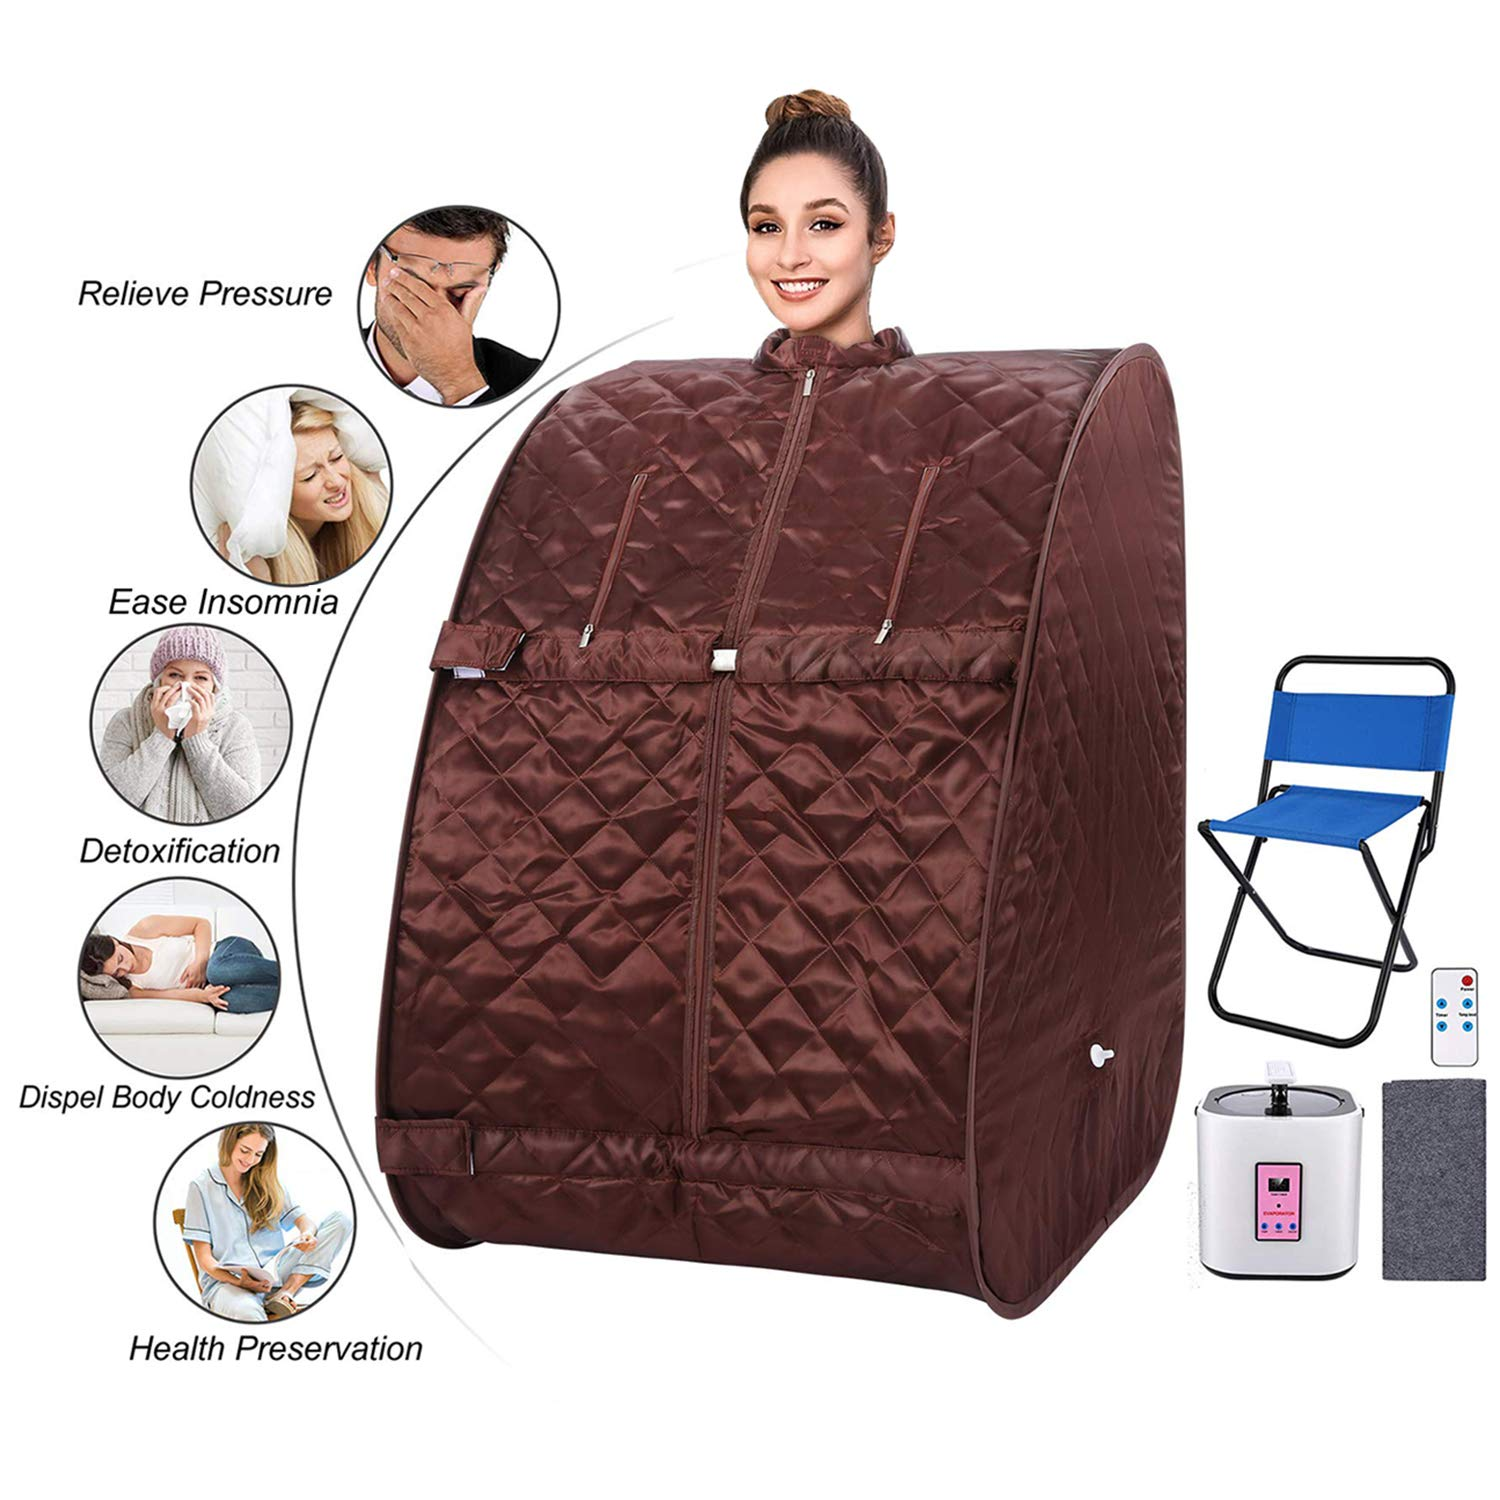 usuallye Steam Sauna Spa 2L Portable Foldable Personal Therapeutic Sauna Tent Pot for Weight Loss Detox Reduce Stress Fatigue with Remote Chair Indoor Home Brown